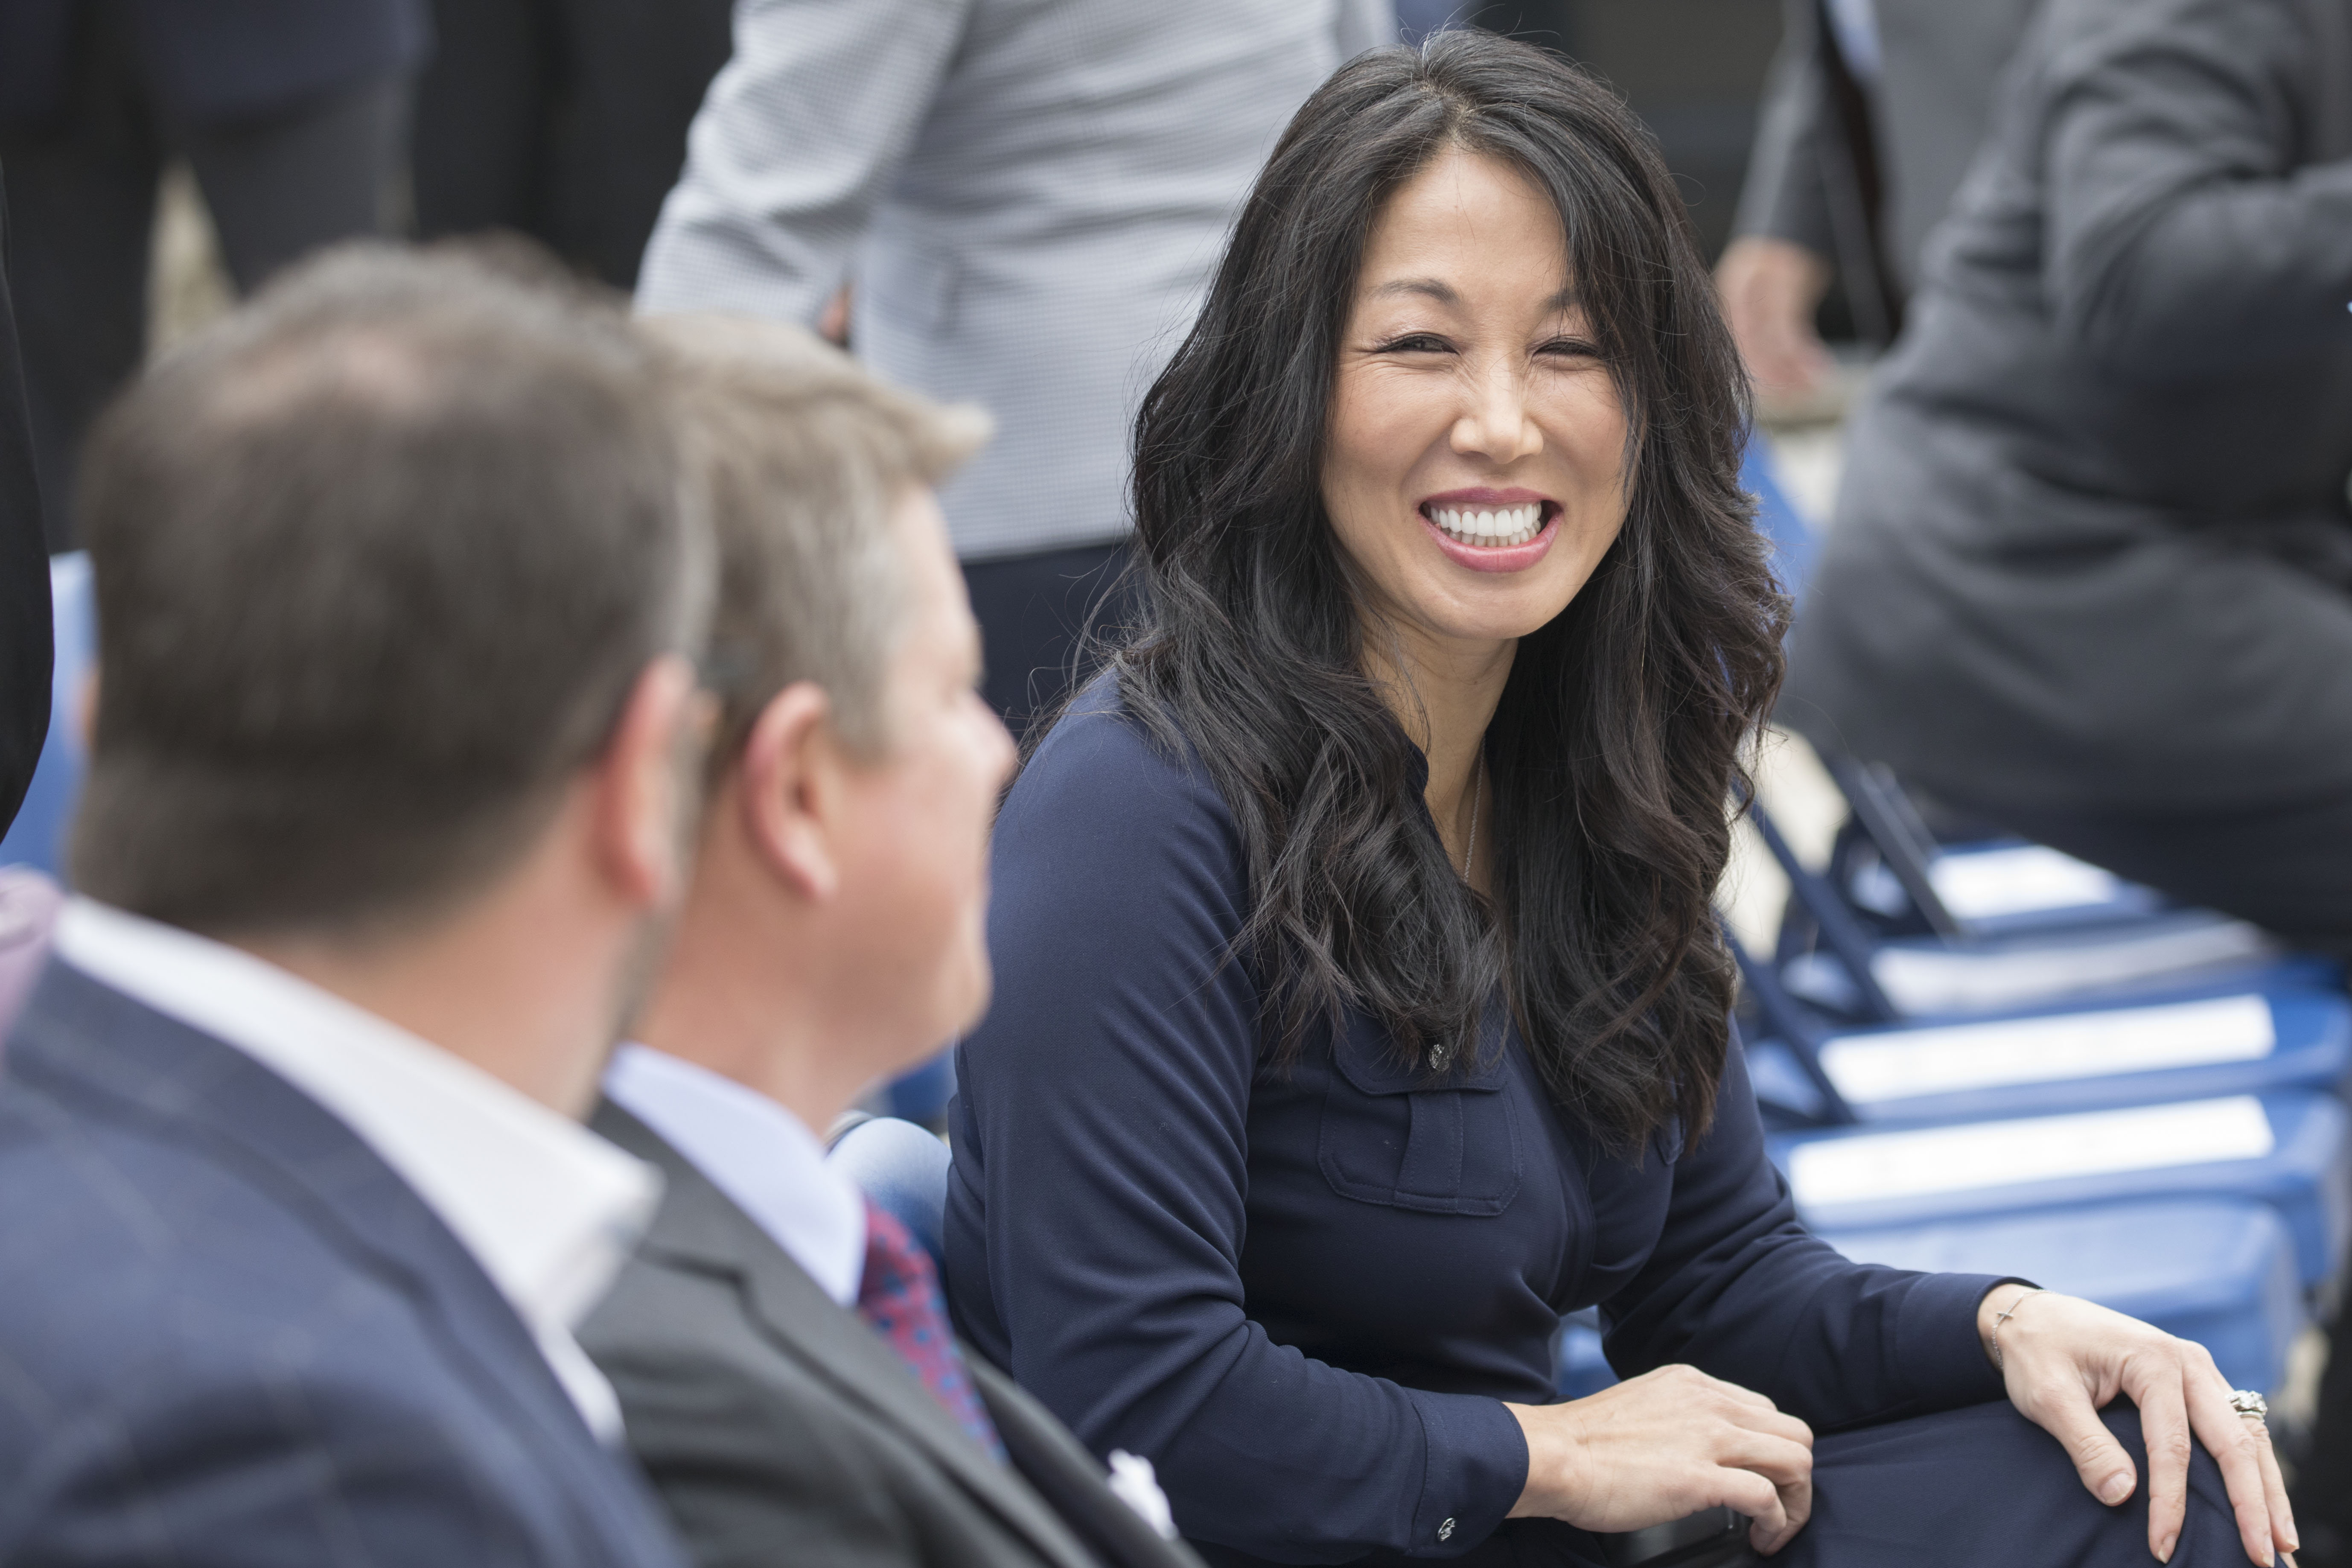 Kim Pegula sits in the front row of the Pegula Sports Entertainment announcement that they purchased the former Hi-Temp Fabrication building and will develop the new Labatt USA headquarters which will include a pilot brewery, Wednesday, April 26, 2017.  (Derek Gee/Buffalo News)